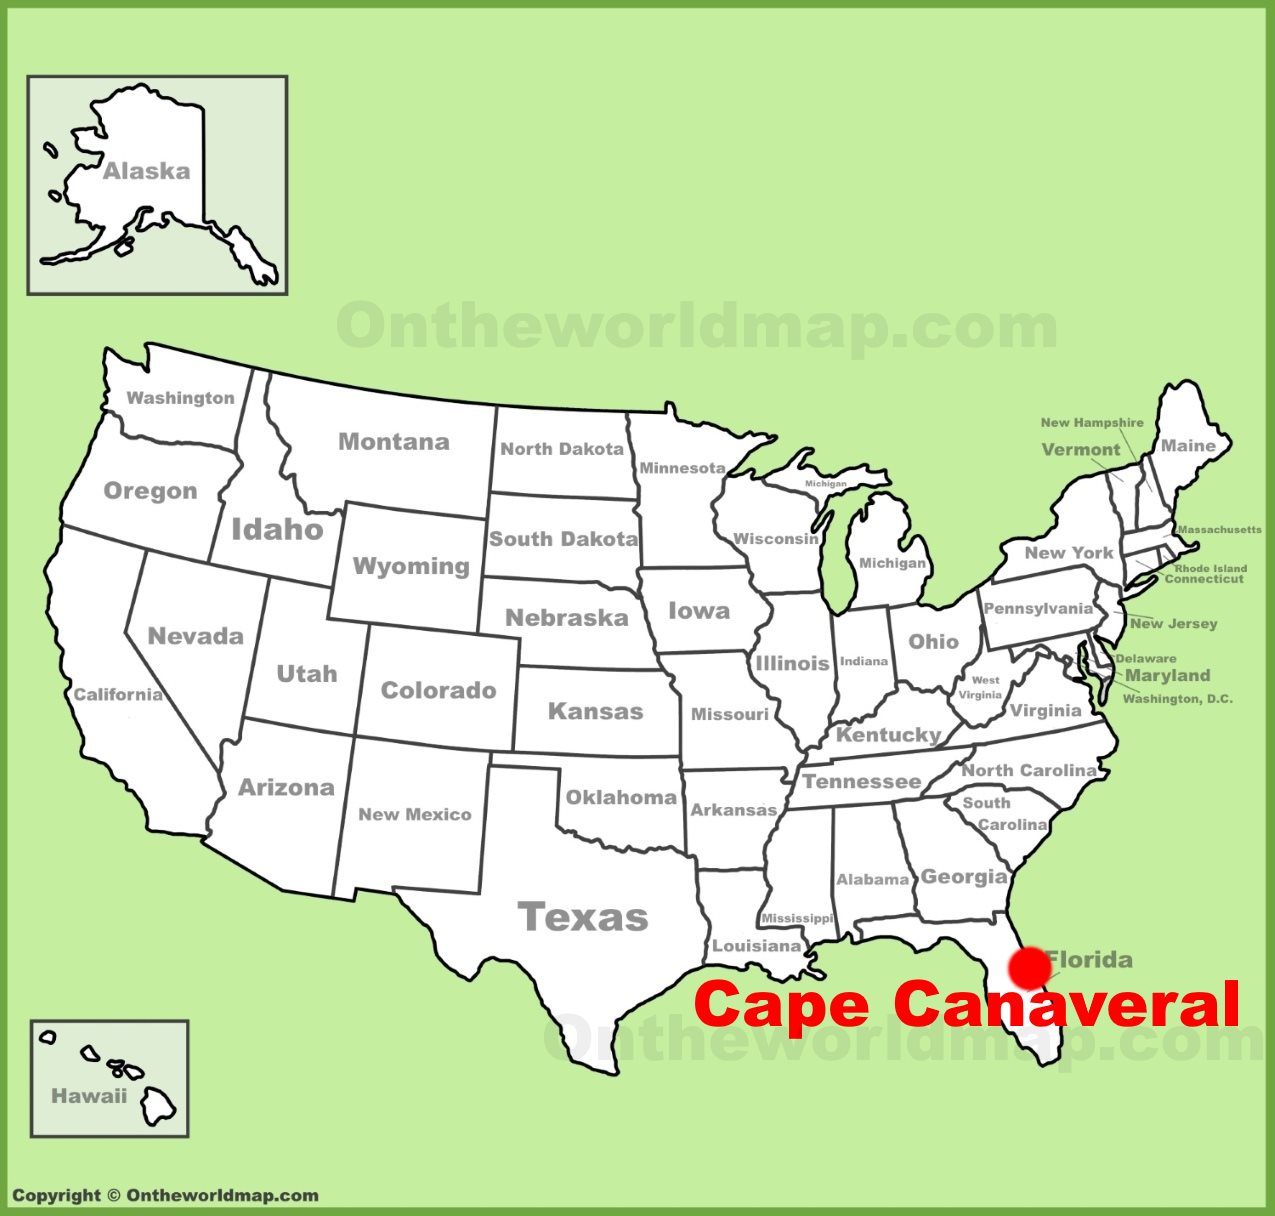 Cape Canaveral location on the U.S. Map on myakka map, southwest gulf coast map, cape kennedy map, frostproof map, cape blanco map, cape hatteras map, canaveral groves map, beach in indialantic fl map, lake okeechobee map, gladeview map, cape cod map, great basin map, south daytona beach map, canaveral port authority map, florida map, canaveral barge canal map, st. augustine map, key west map, cape flattery map, the everglades map,